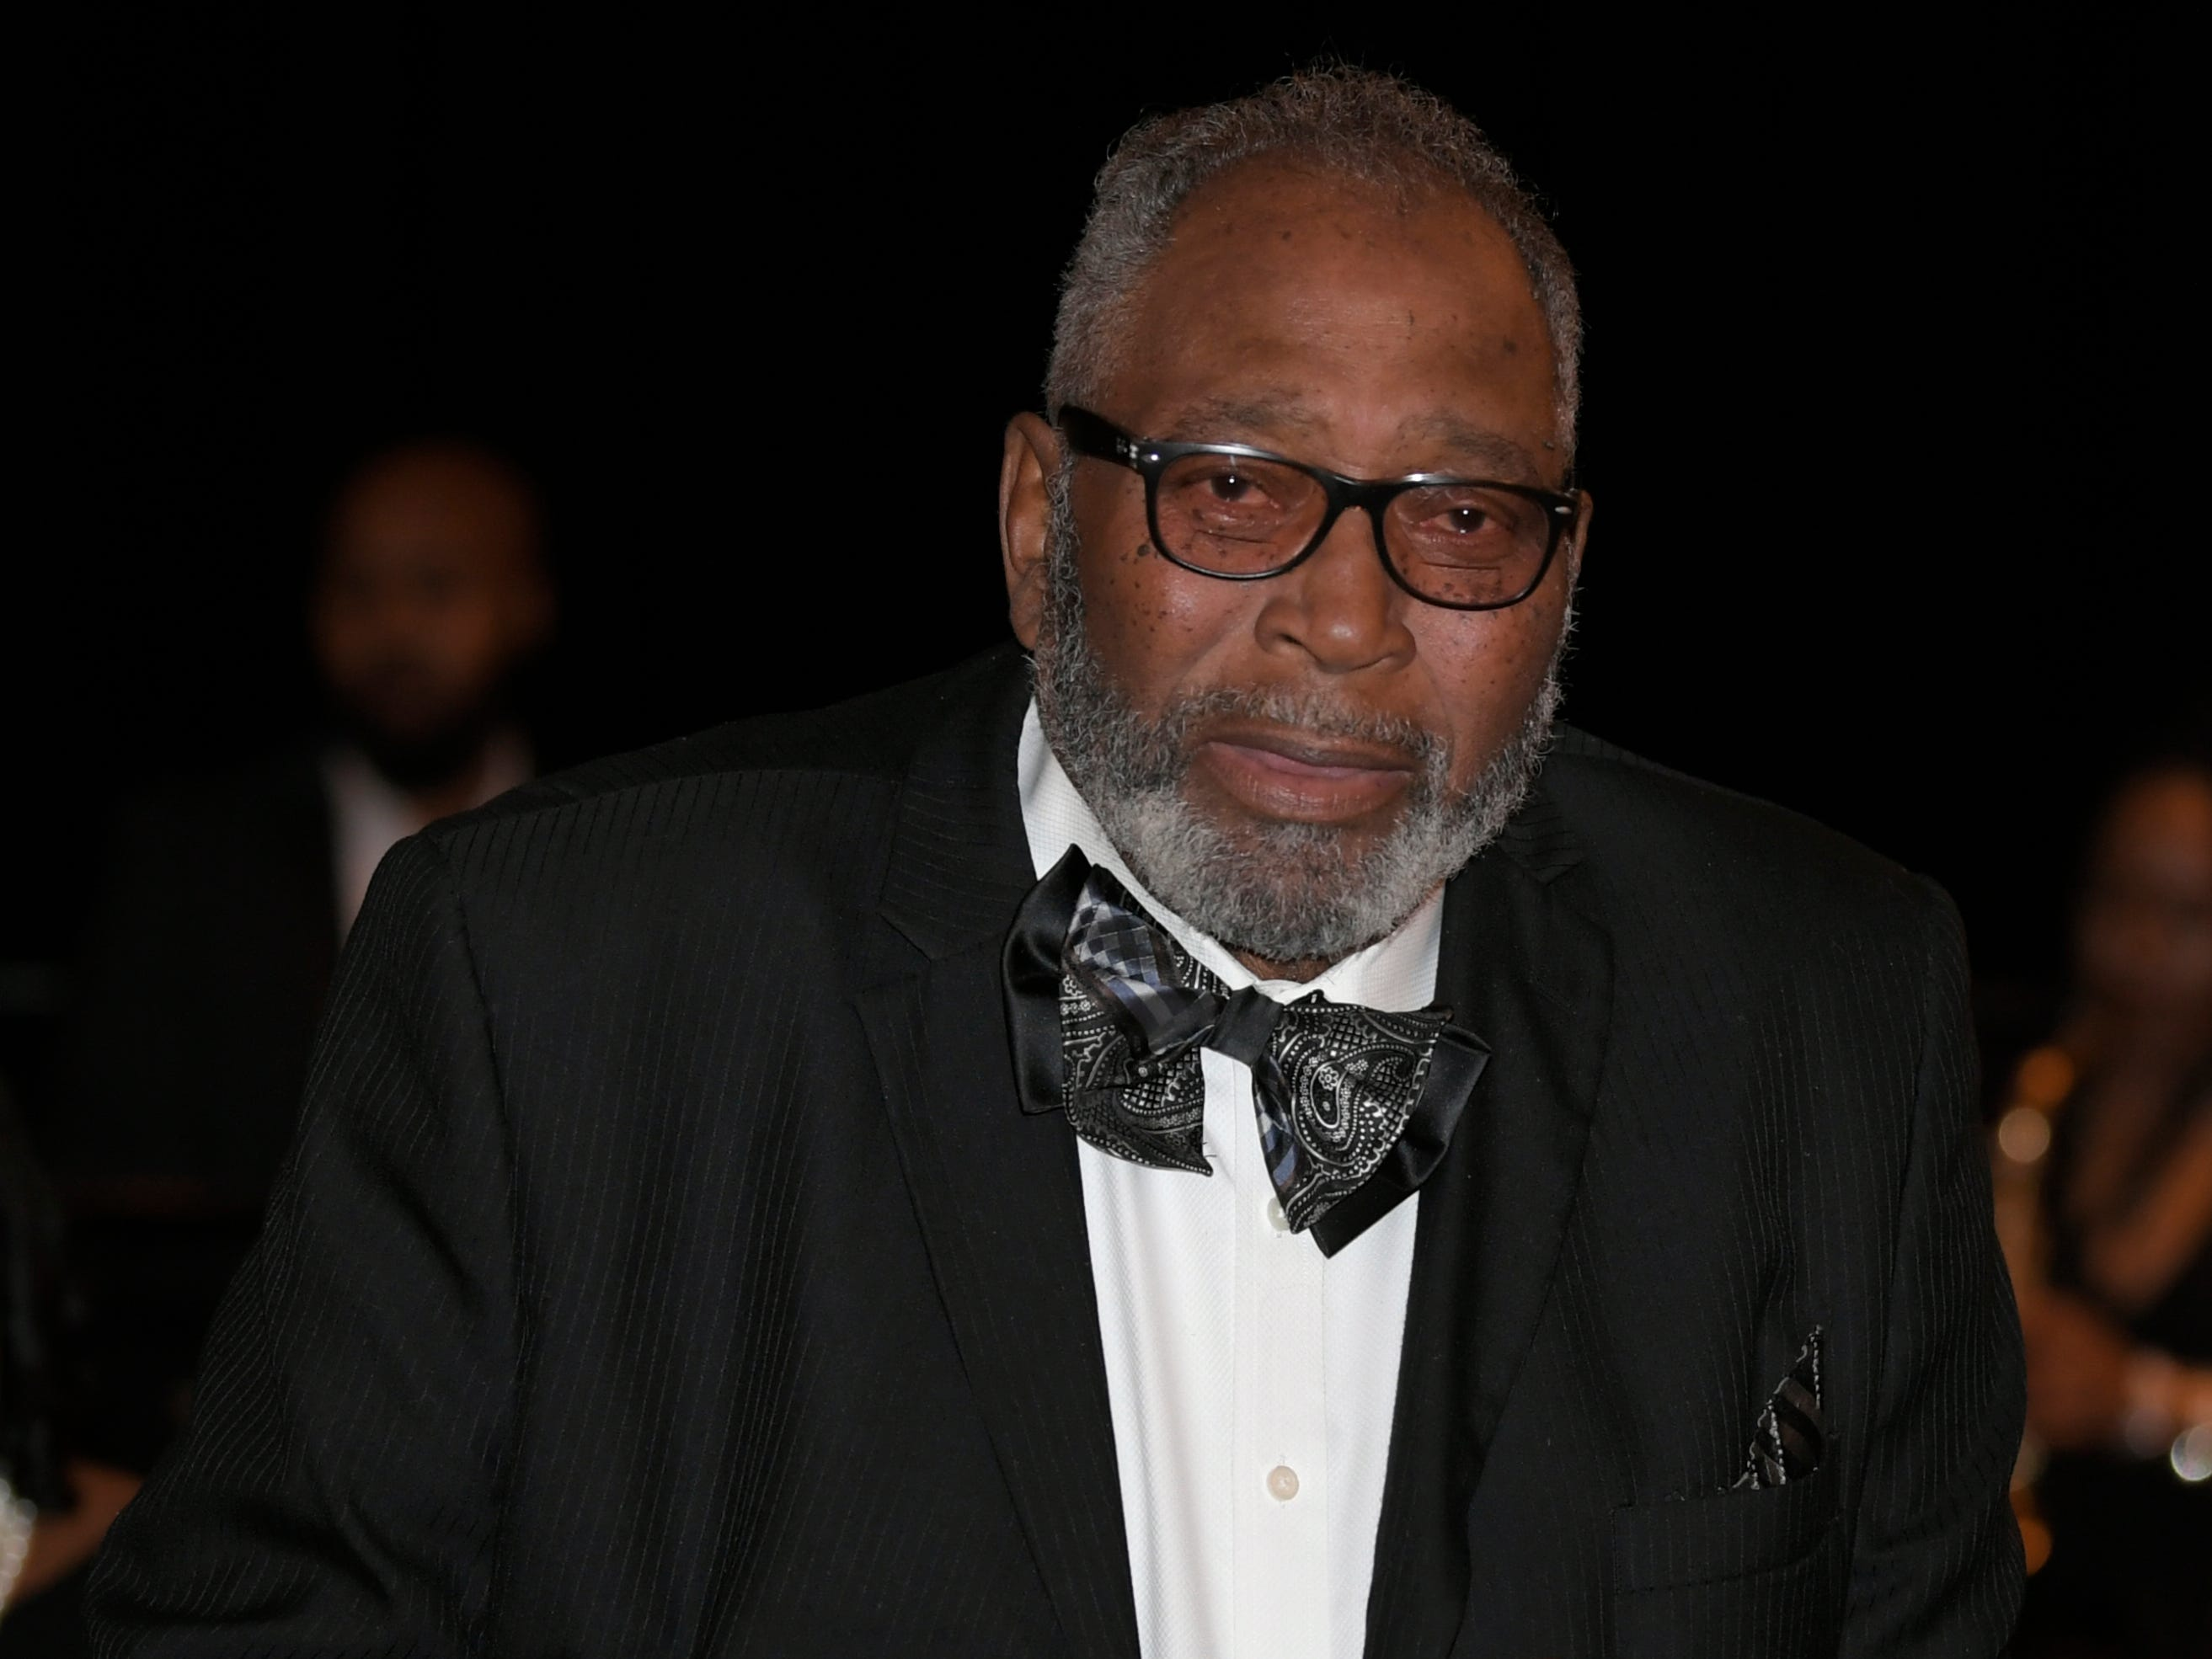 John Holt was honored at the African American Heritage Society's 18th Annual Black Tie Affair at the Embassy Suites in Franklin on Sat., Feb. 2, 2019.